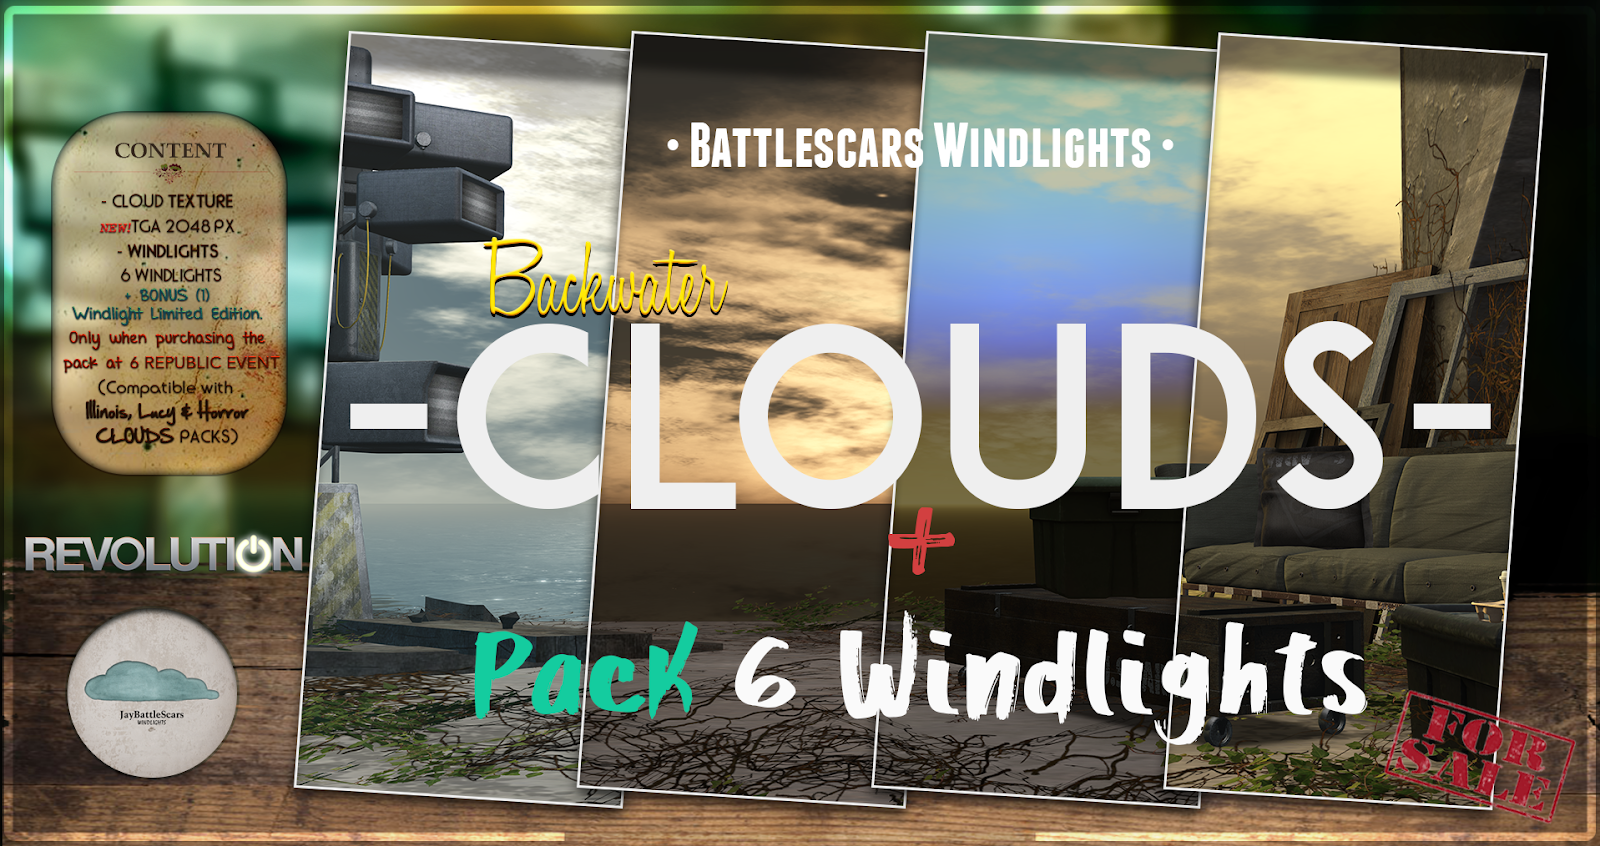 NEW RELEASE: Battlescars Windlights - CLOUDS - BACKWATER 1.0 (PREMIUM)